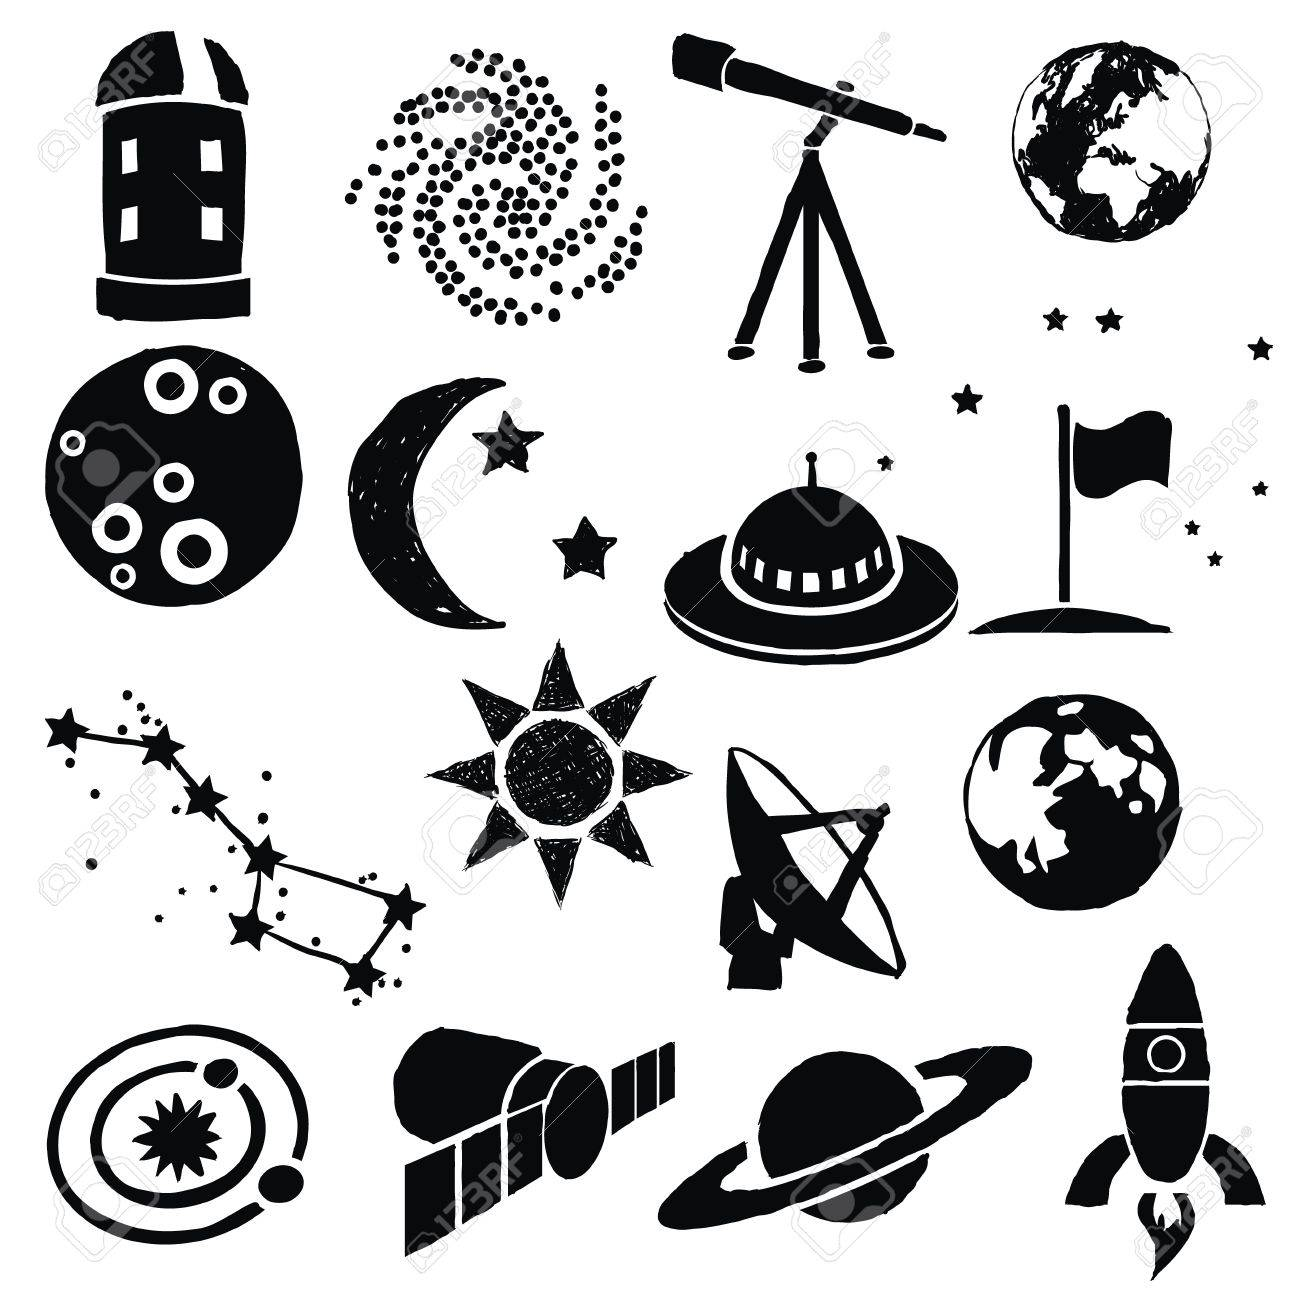 doodle space images Stock Vector - 16899273